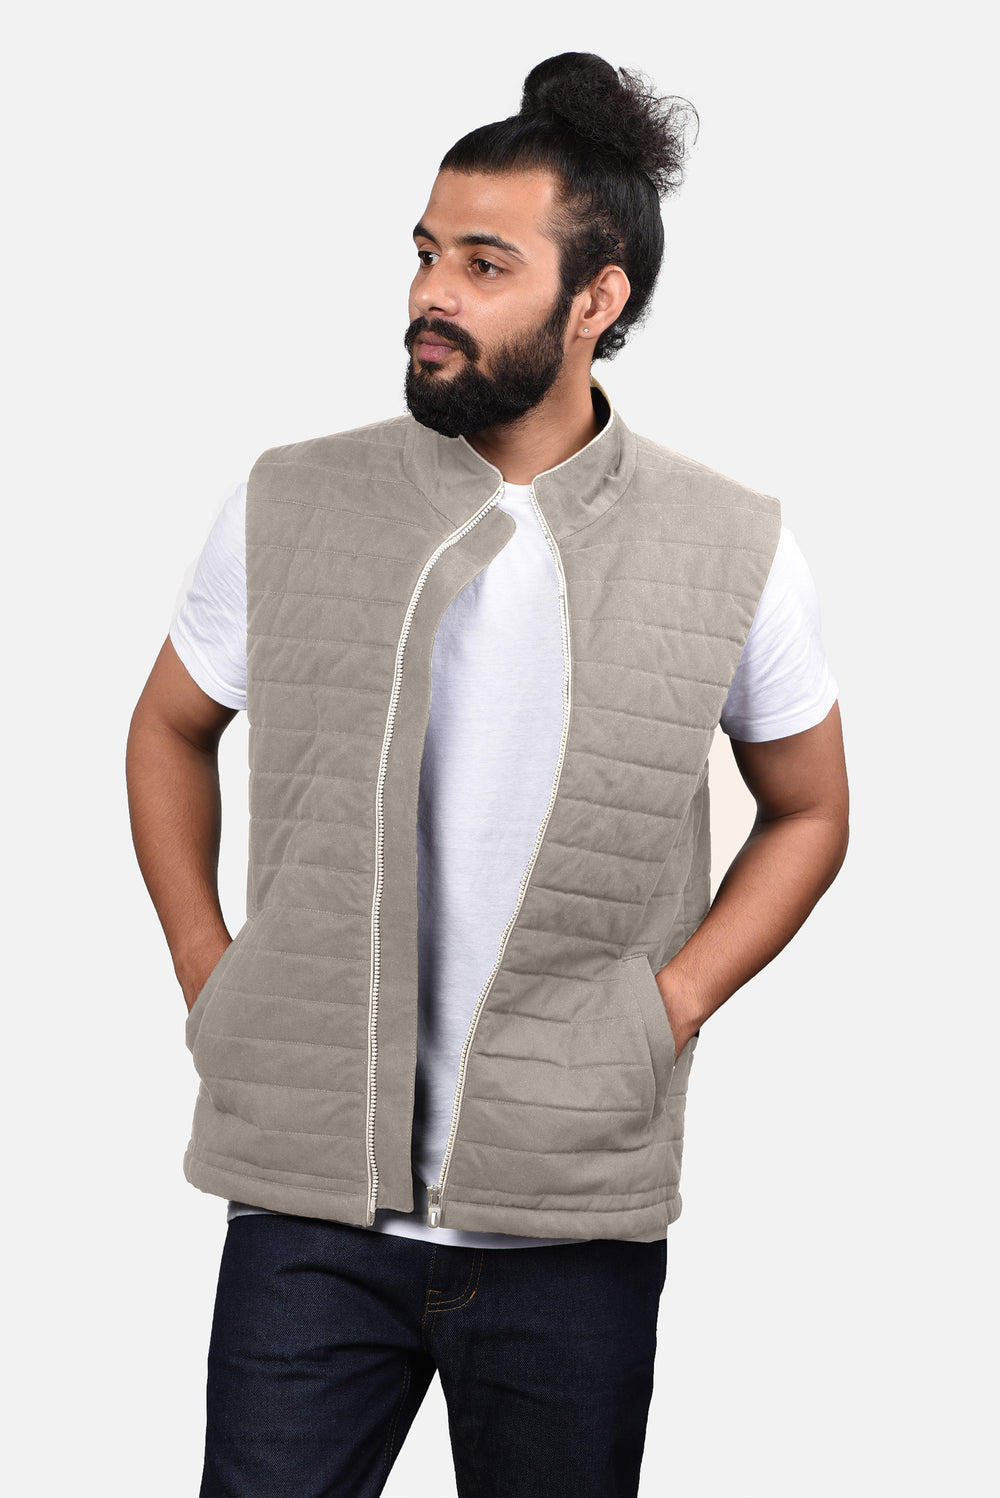 Quilted Gilets in Performance: Light Fade Beige Twill